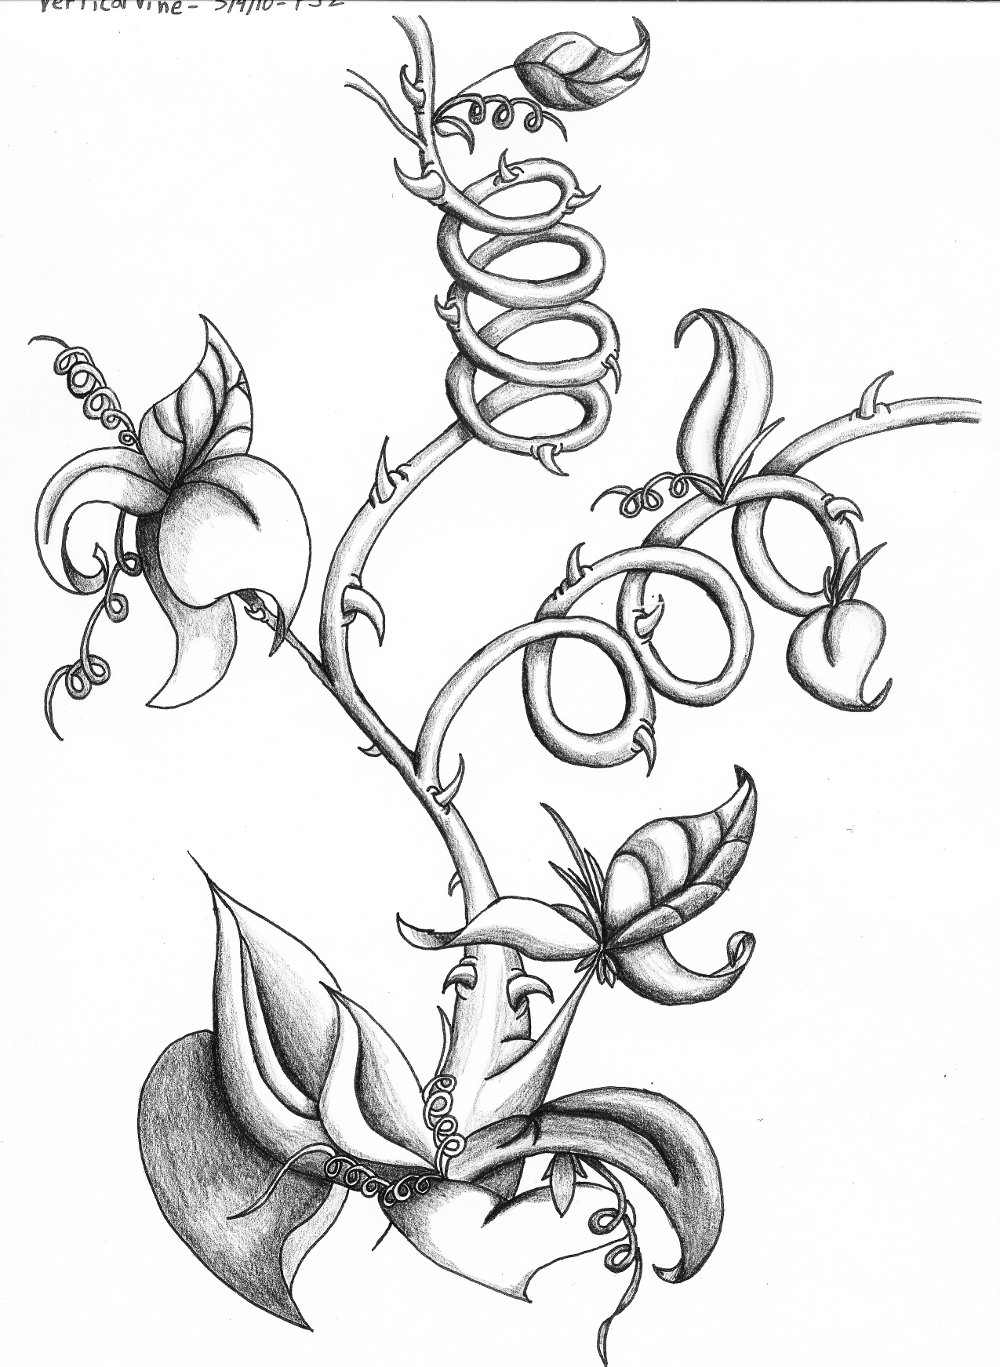 It is an image of Obsessed Rose Vine Drawing